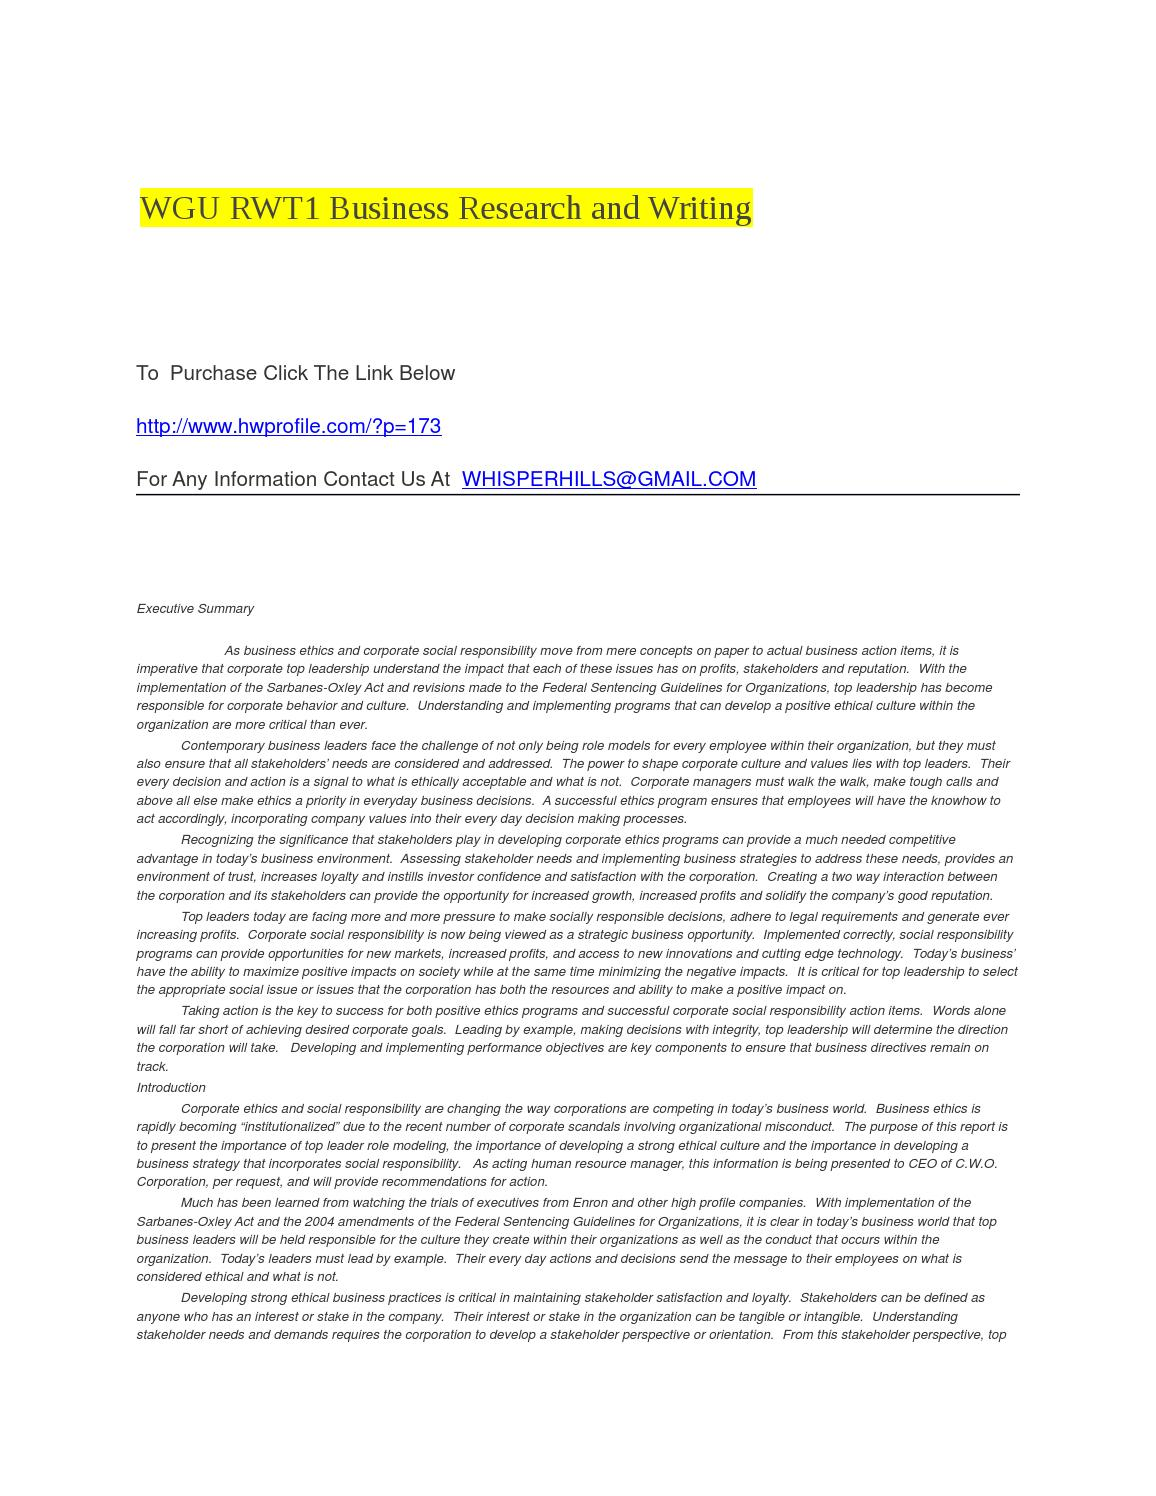 rwt1 wgu business report Business research report evaluating compensation strategies assessment code: rwt1 table of contents executive summary 3.